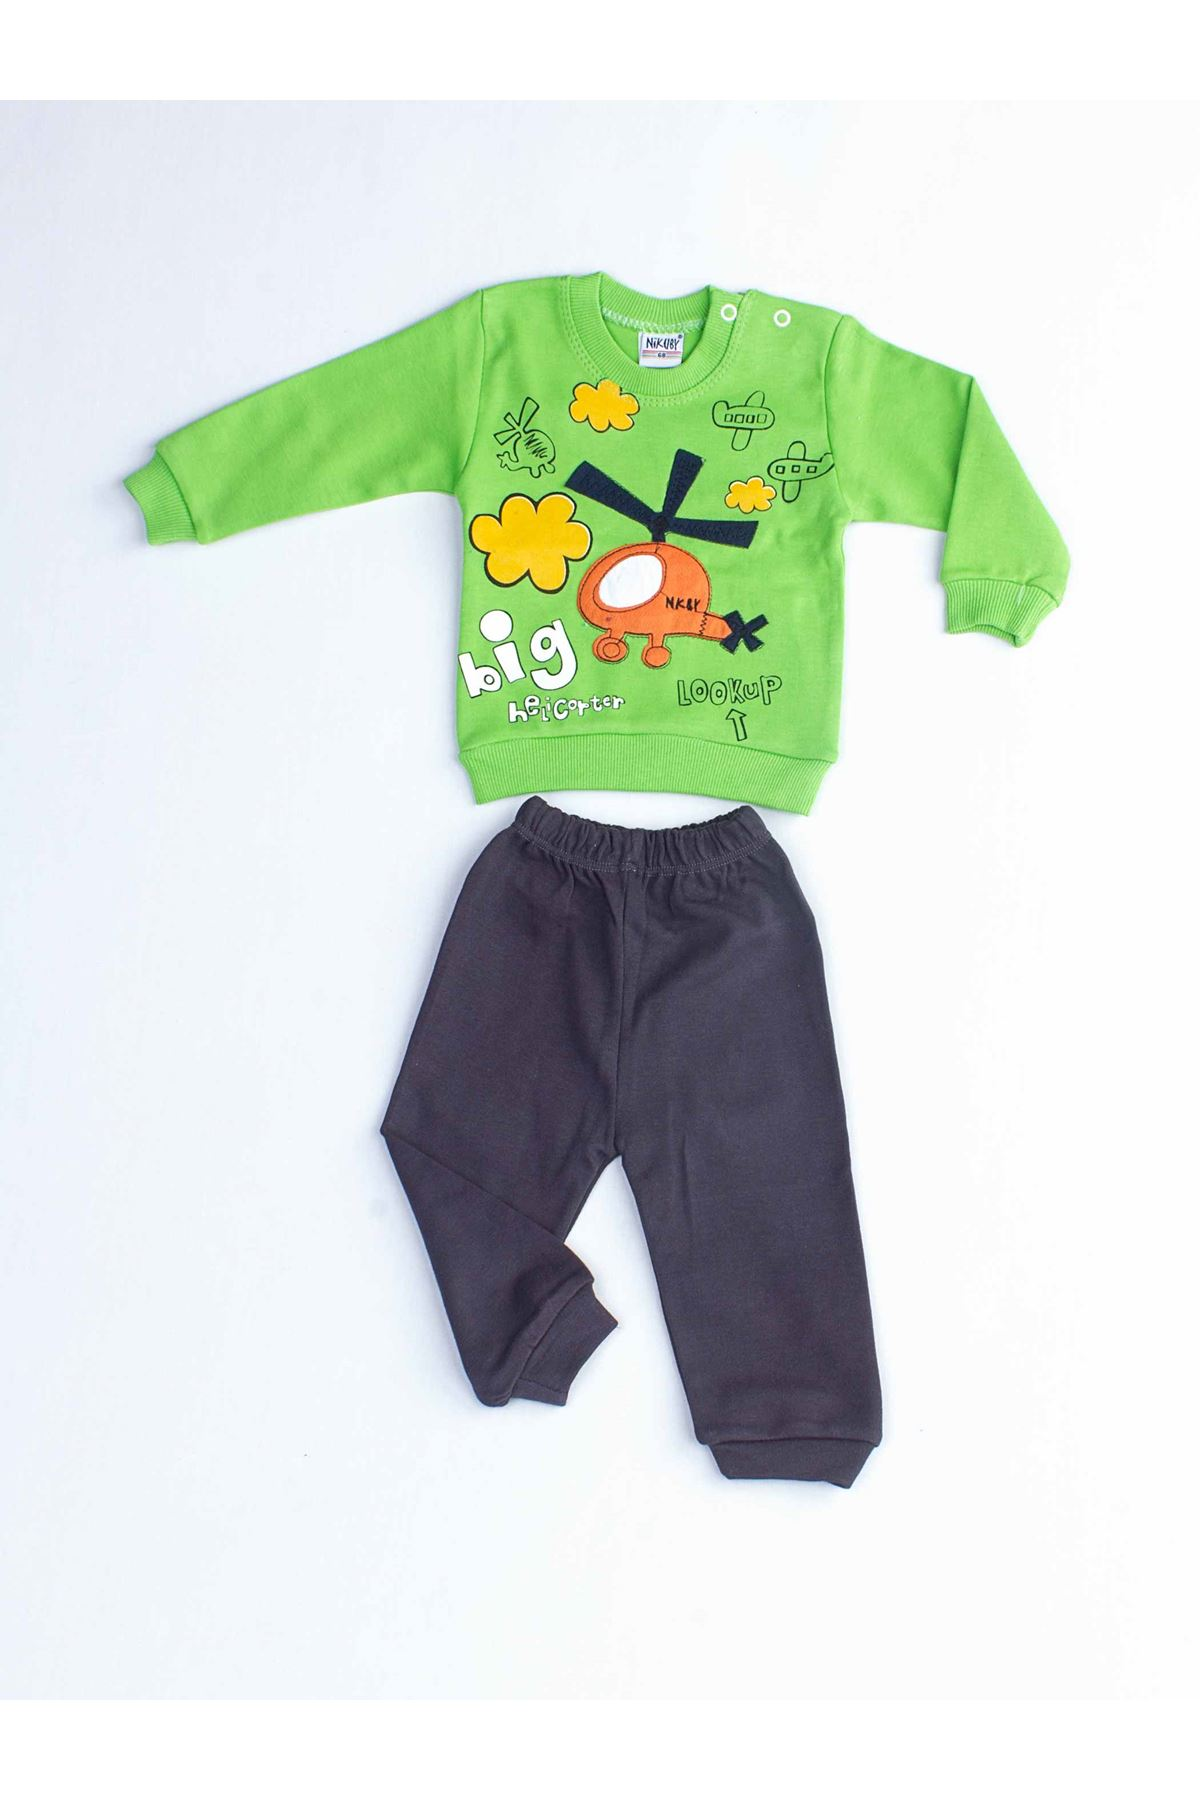 Green Baby Boy Daily 2 Piece Suit Set Cotton Daily Seasonal Casual Wear Boys Babies Suit Outfit Models